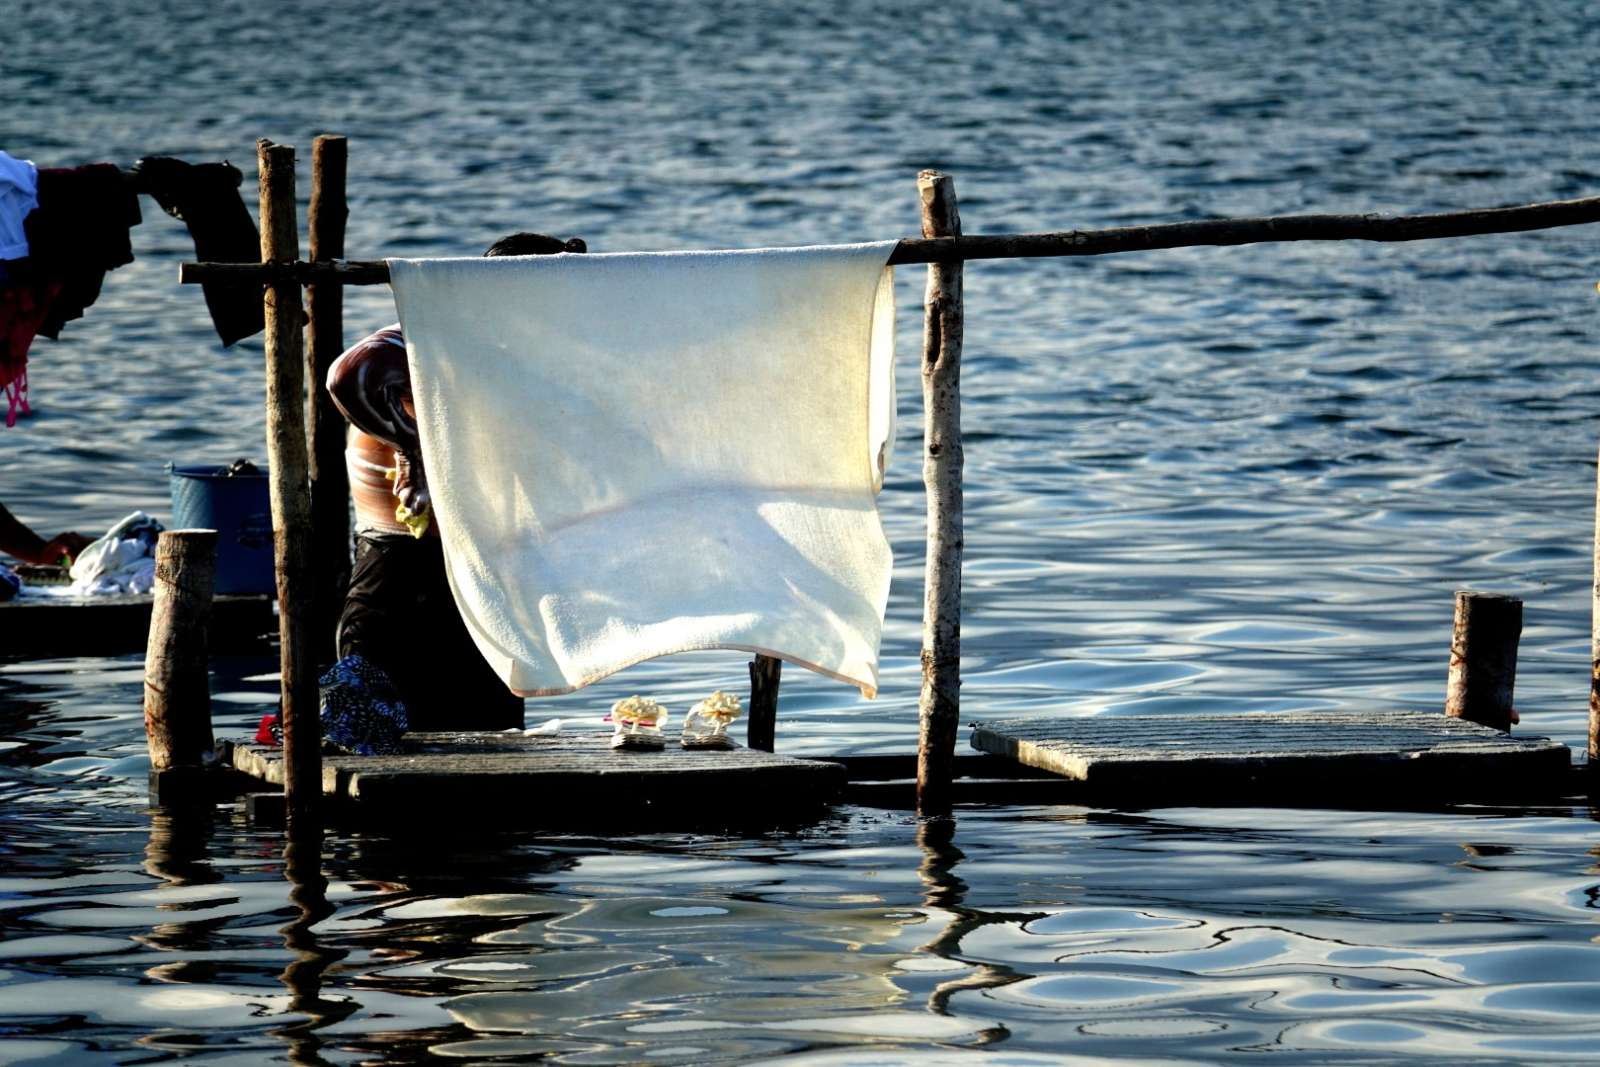 Doing laundry on Lake Atitlan, Guatemala